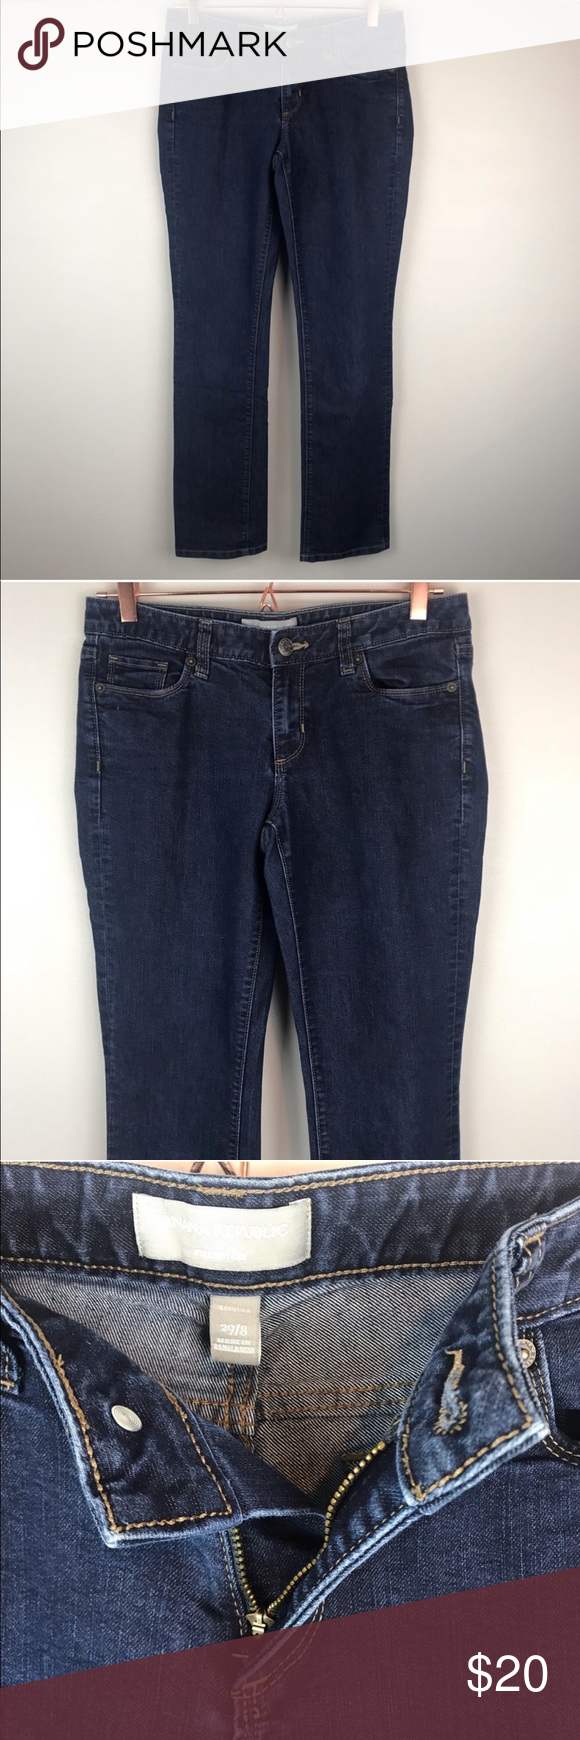 Banana Republic Relaxed Fit Blue Jeans (With images